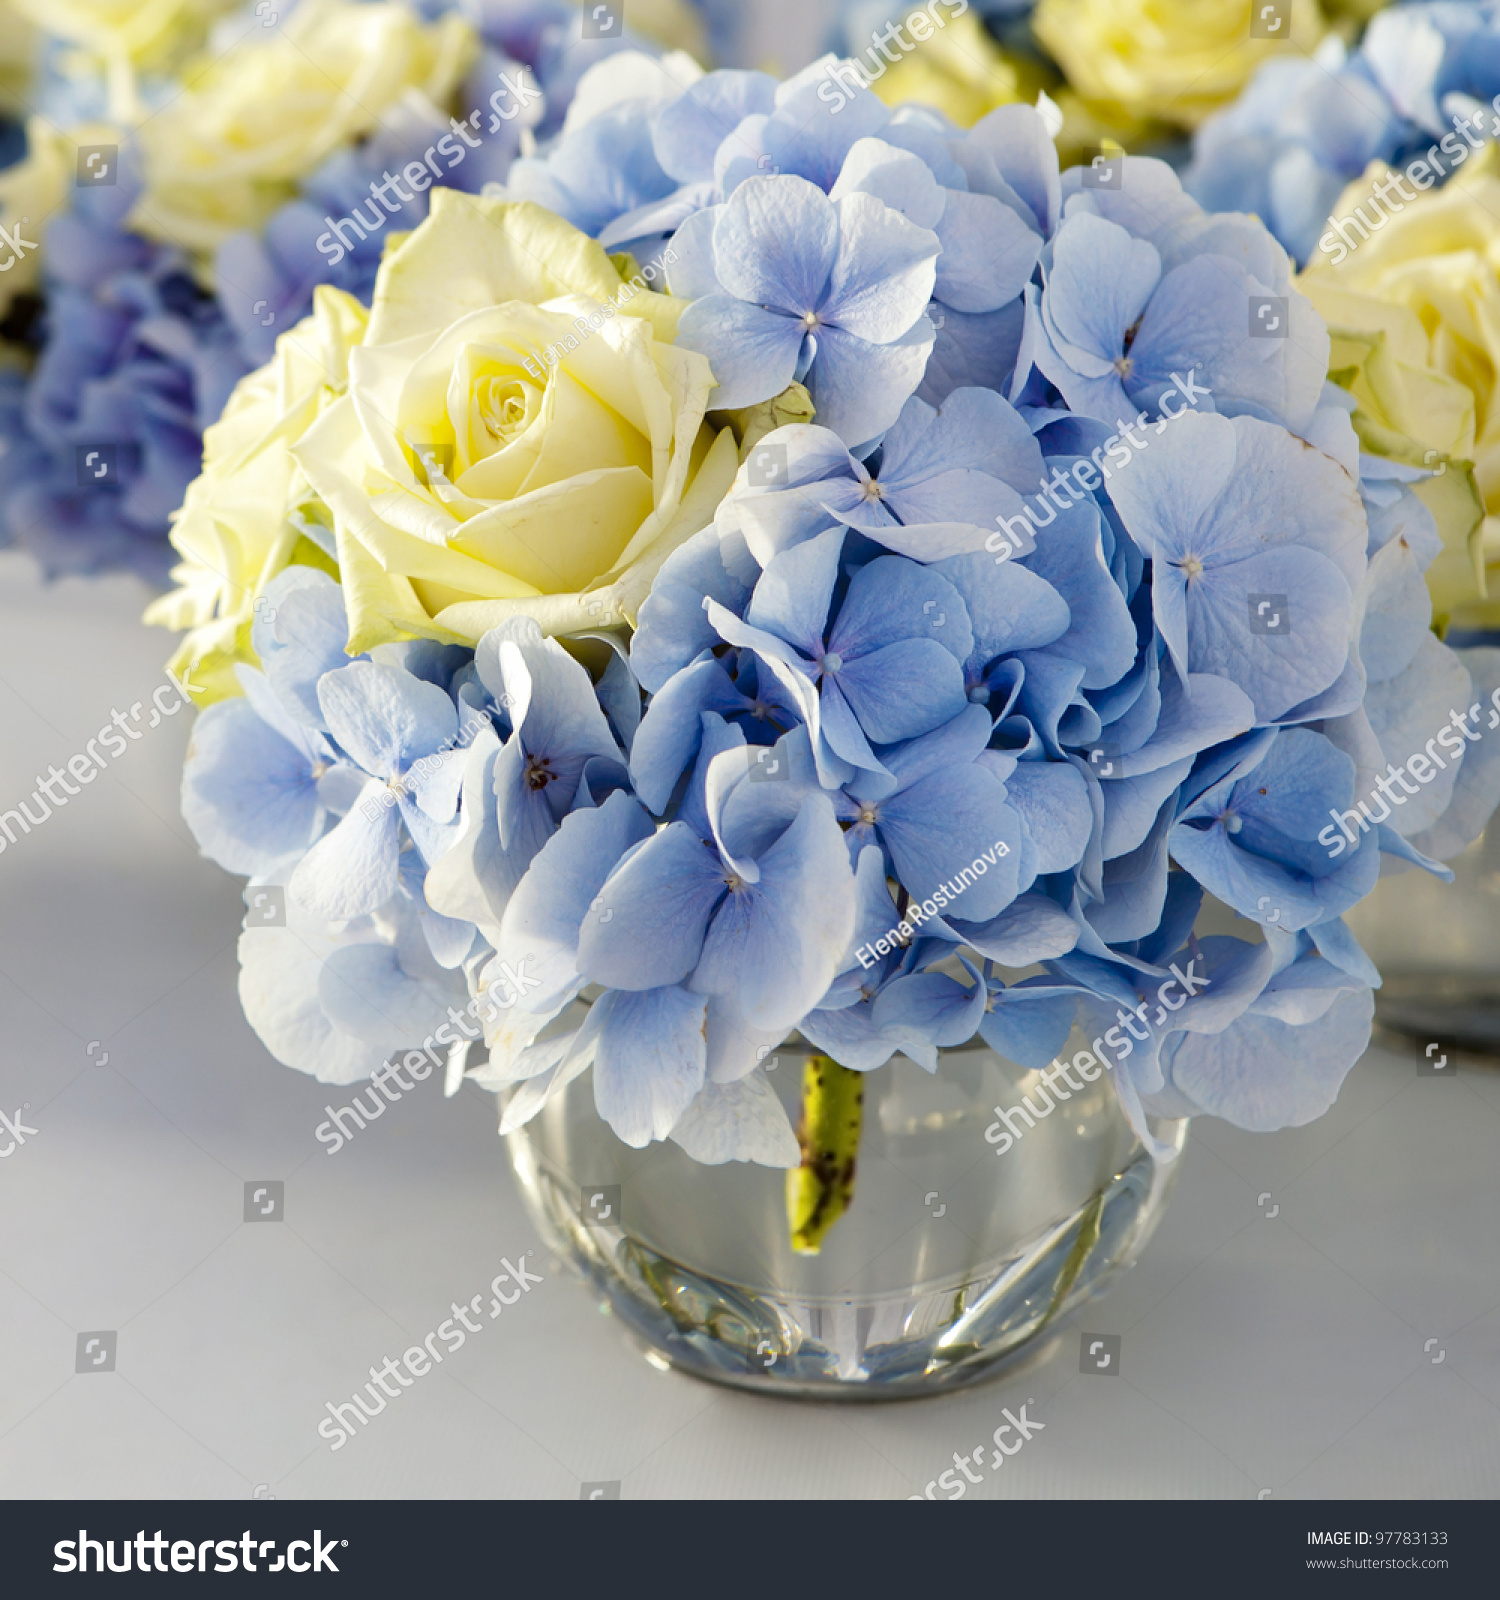 Blaue Tischdeko Bouquet White Blue Flower Vase Glass Stock Photo 97783133